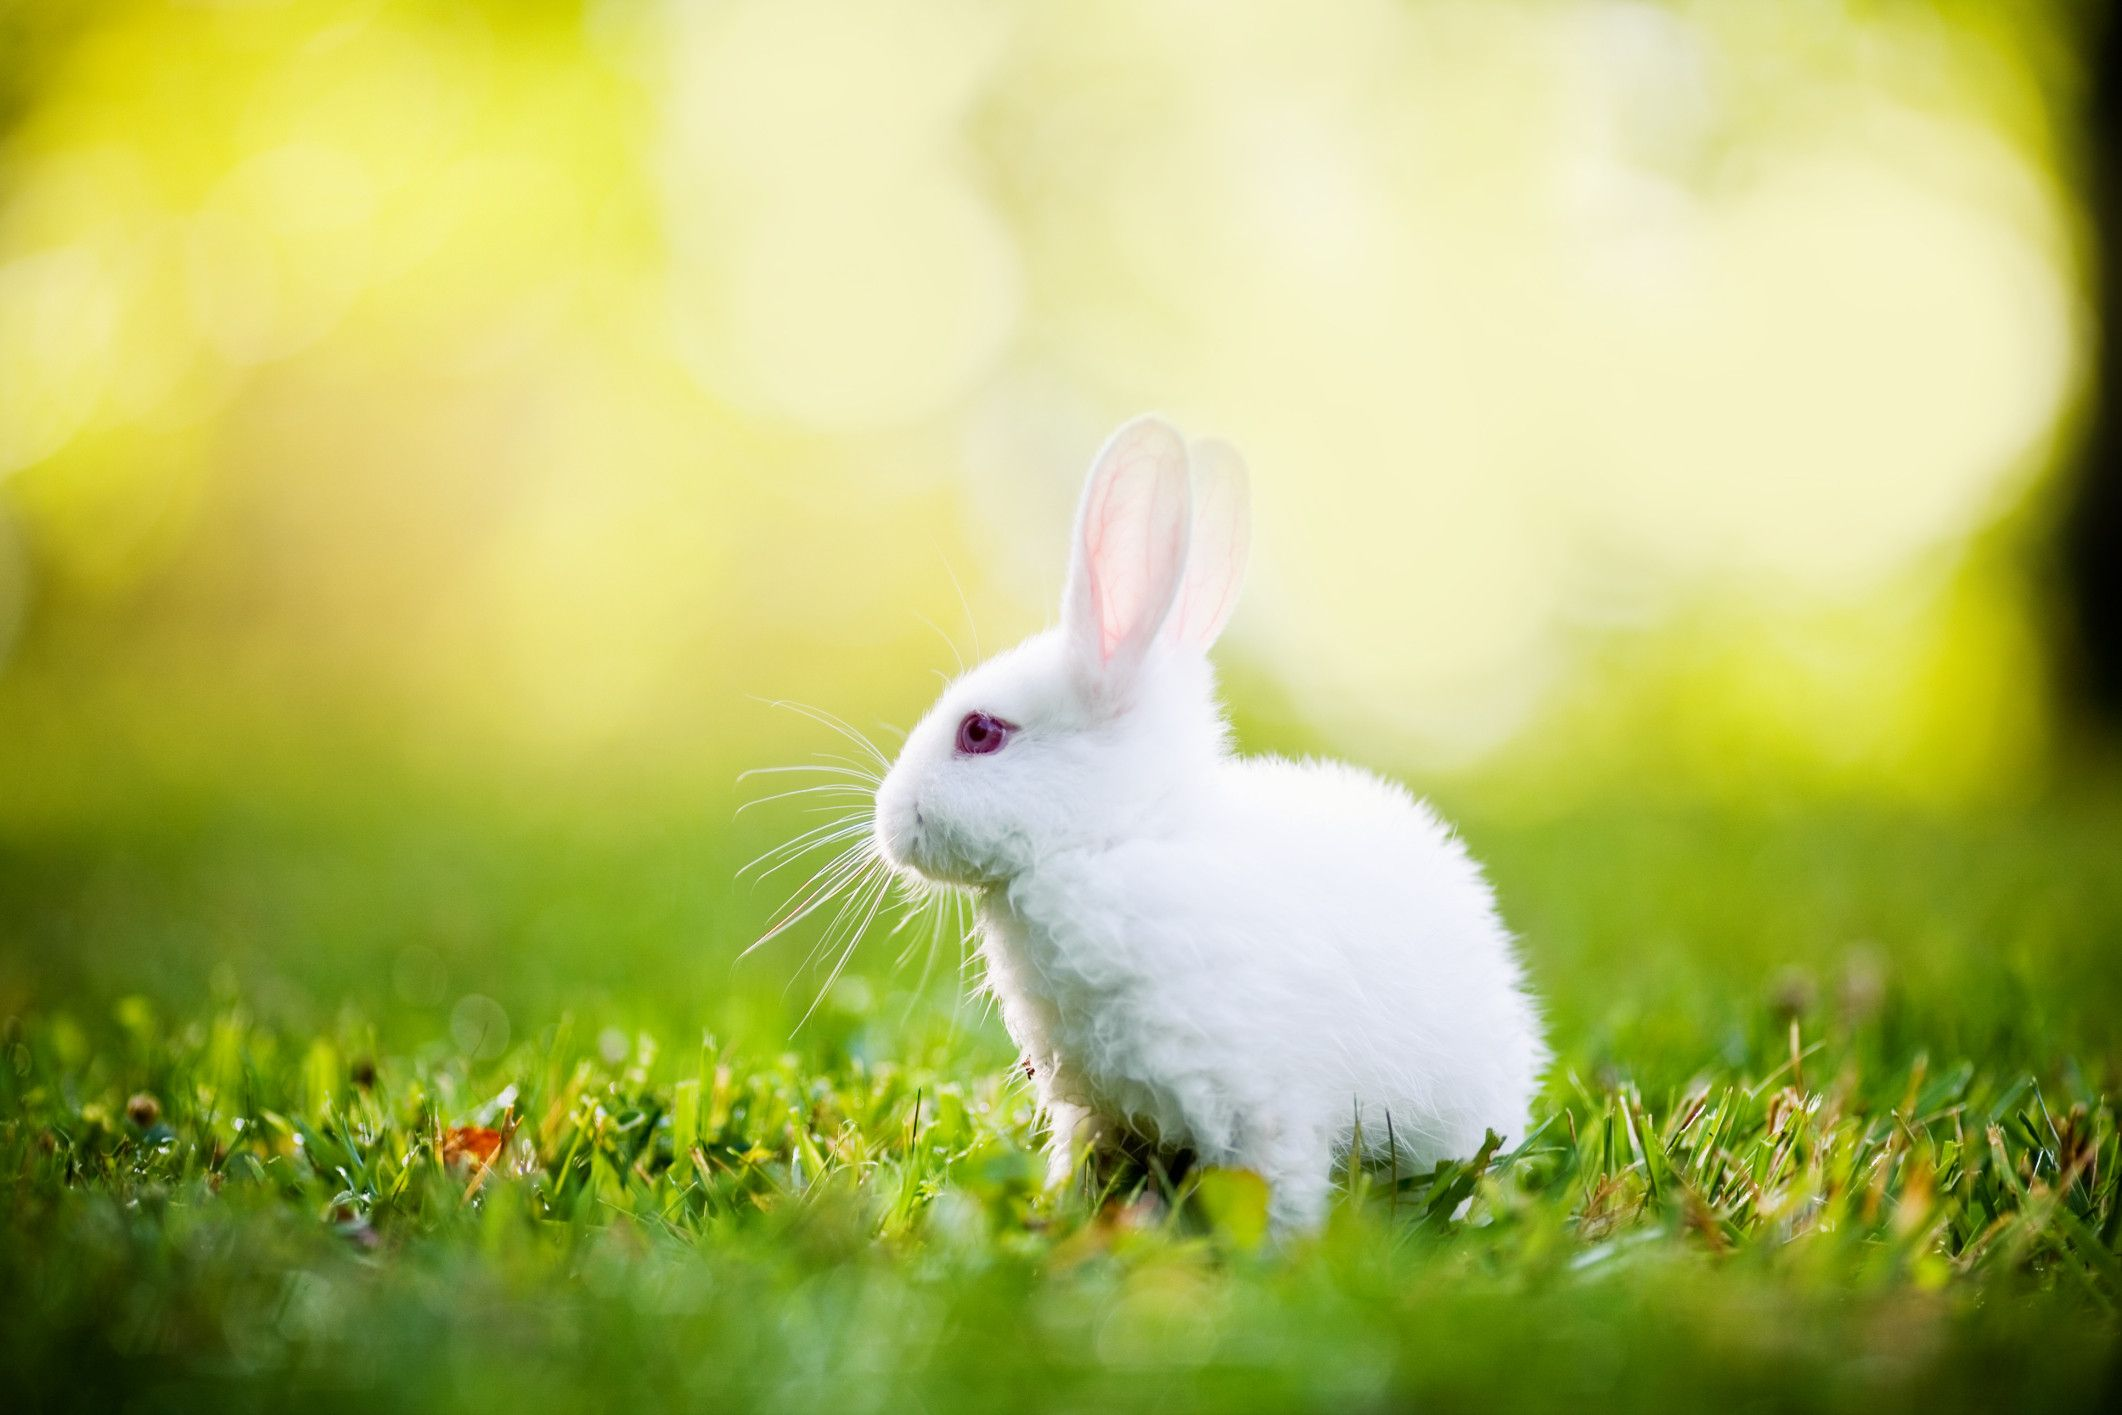 Image Result For White Rabbits Image Beautiful Rabbit Rabbit Wallpaper White Rabbit Images